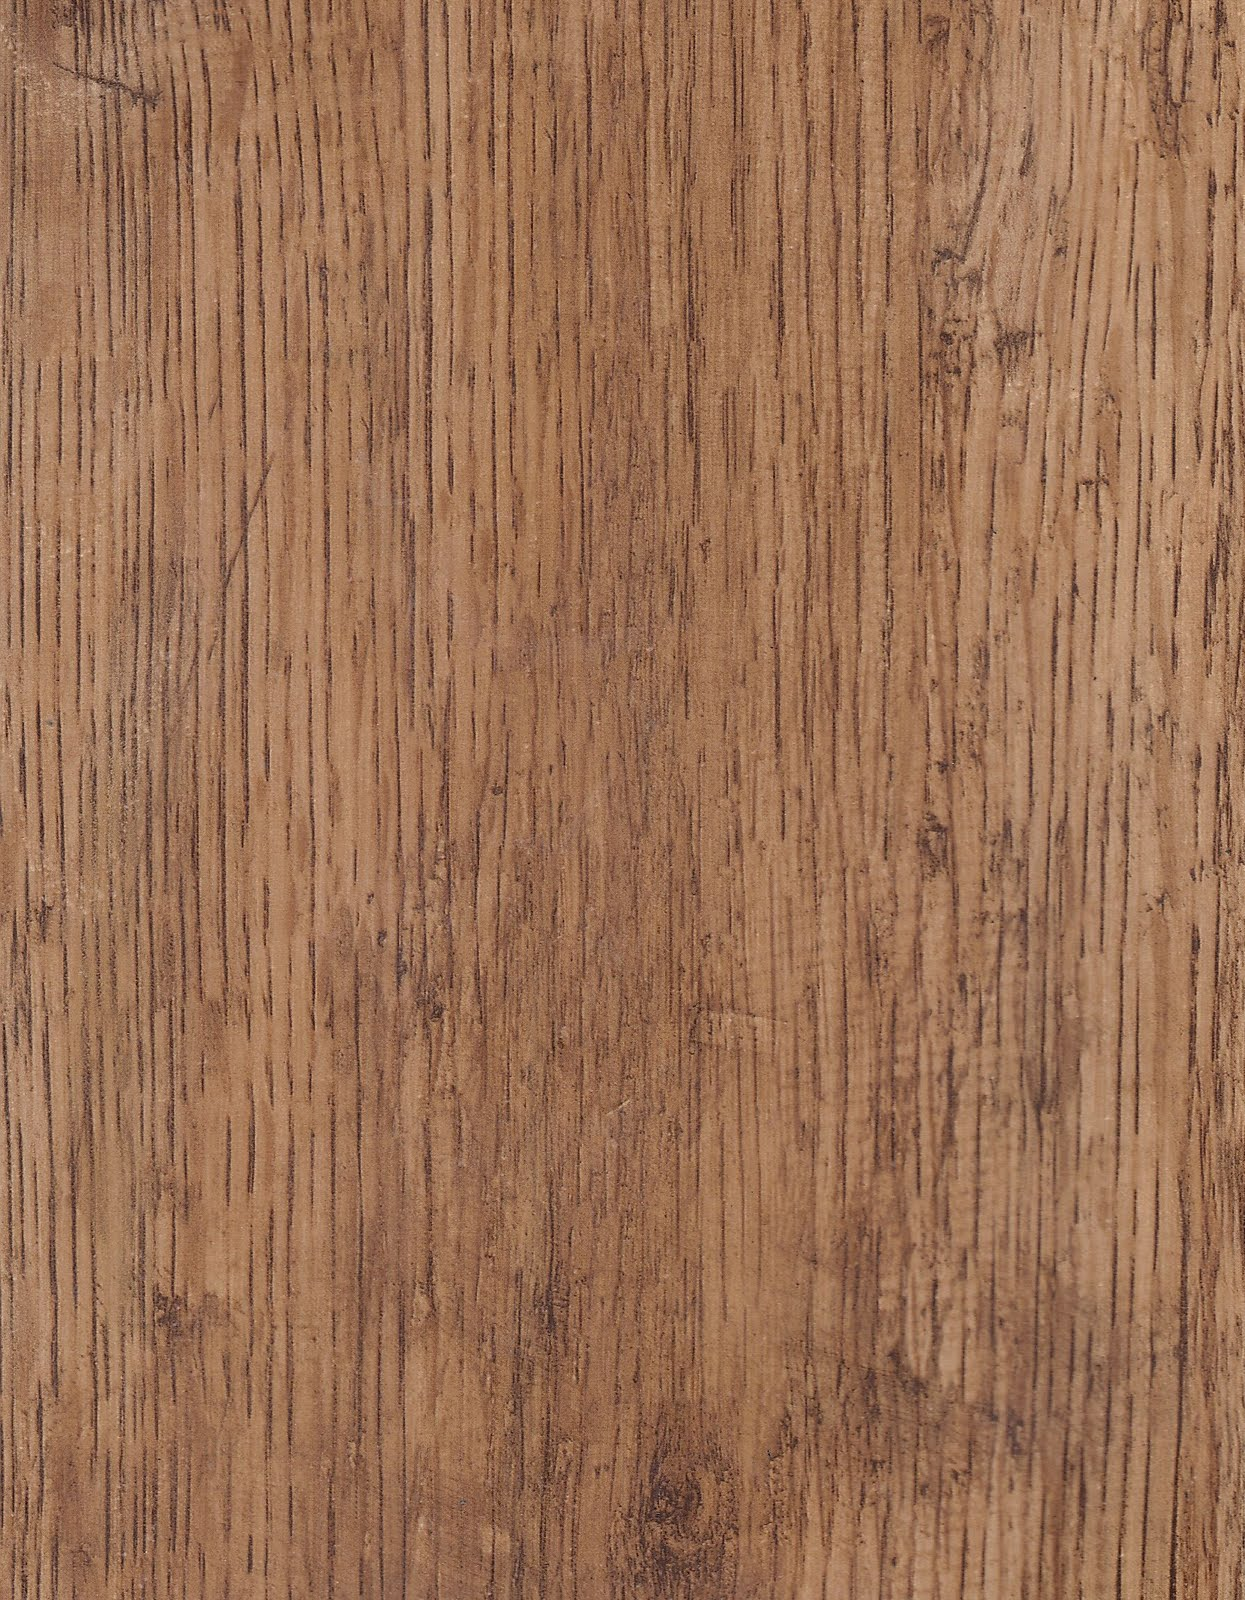 Wood flooring online vinyl plank flooring for Pvc wood flooring